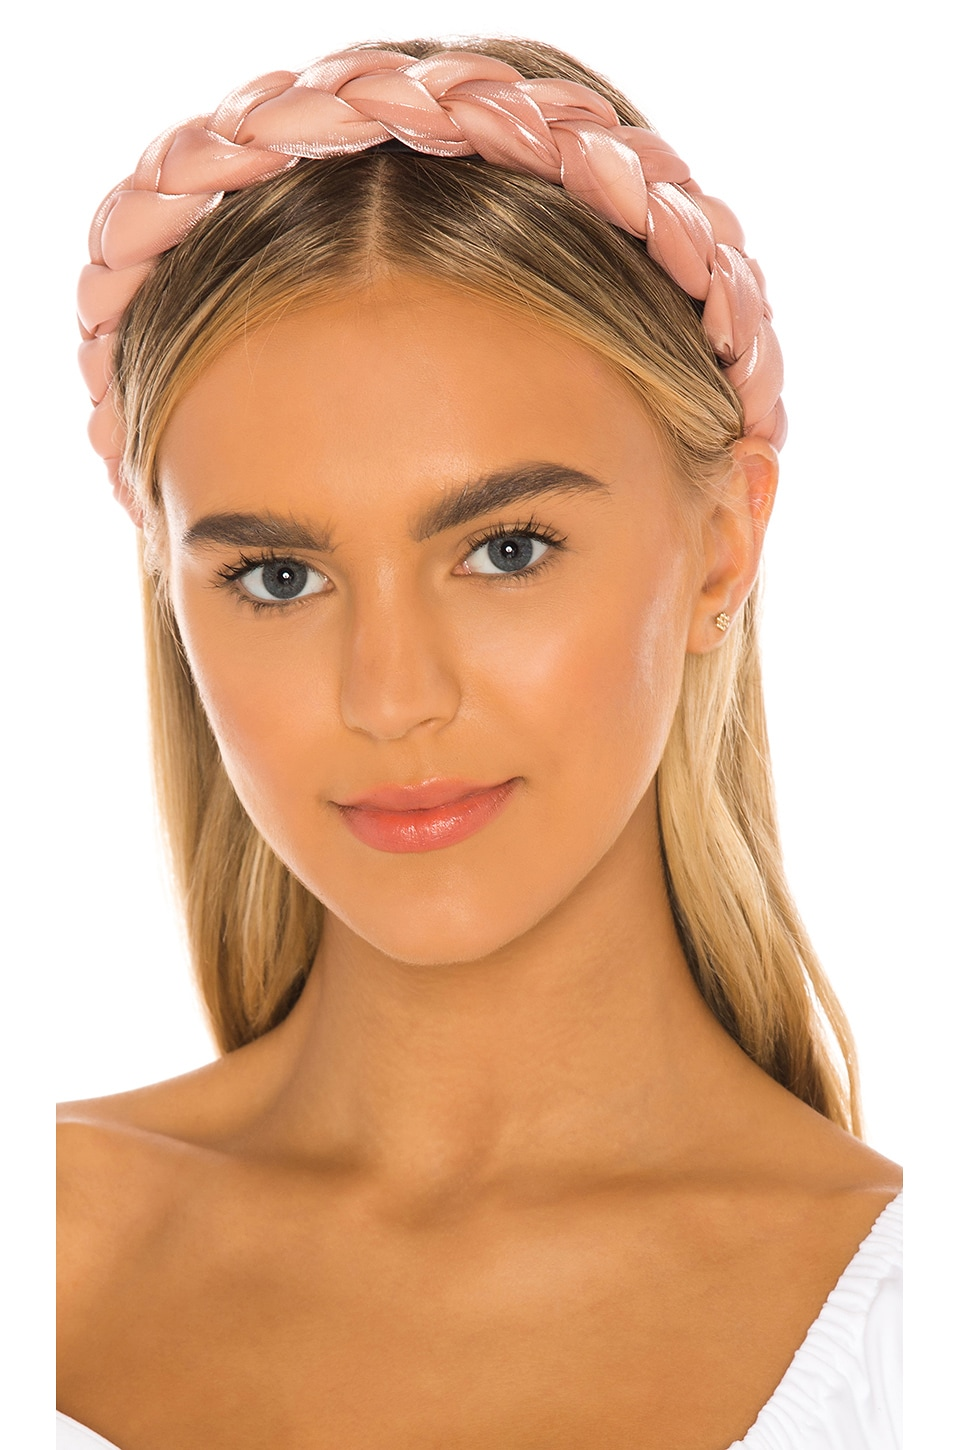 8 Other Reasons Twist Headband in Pink